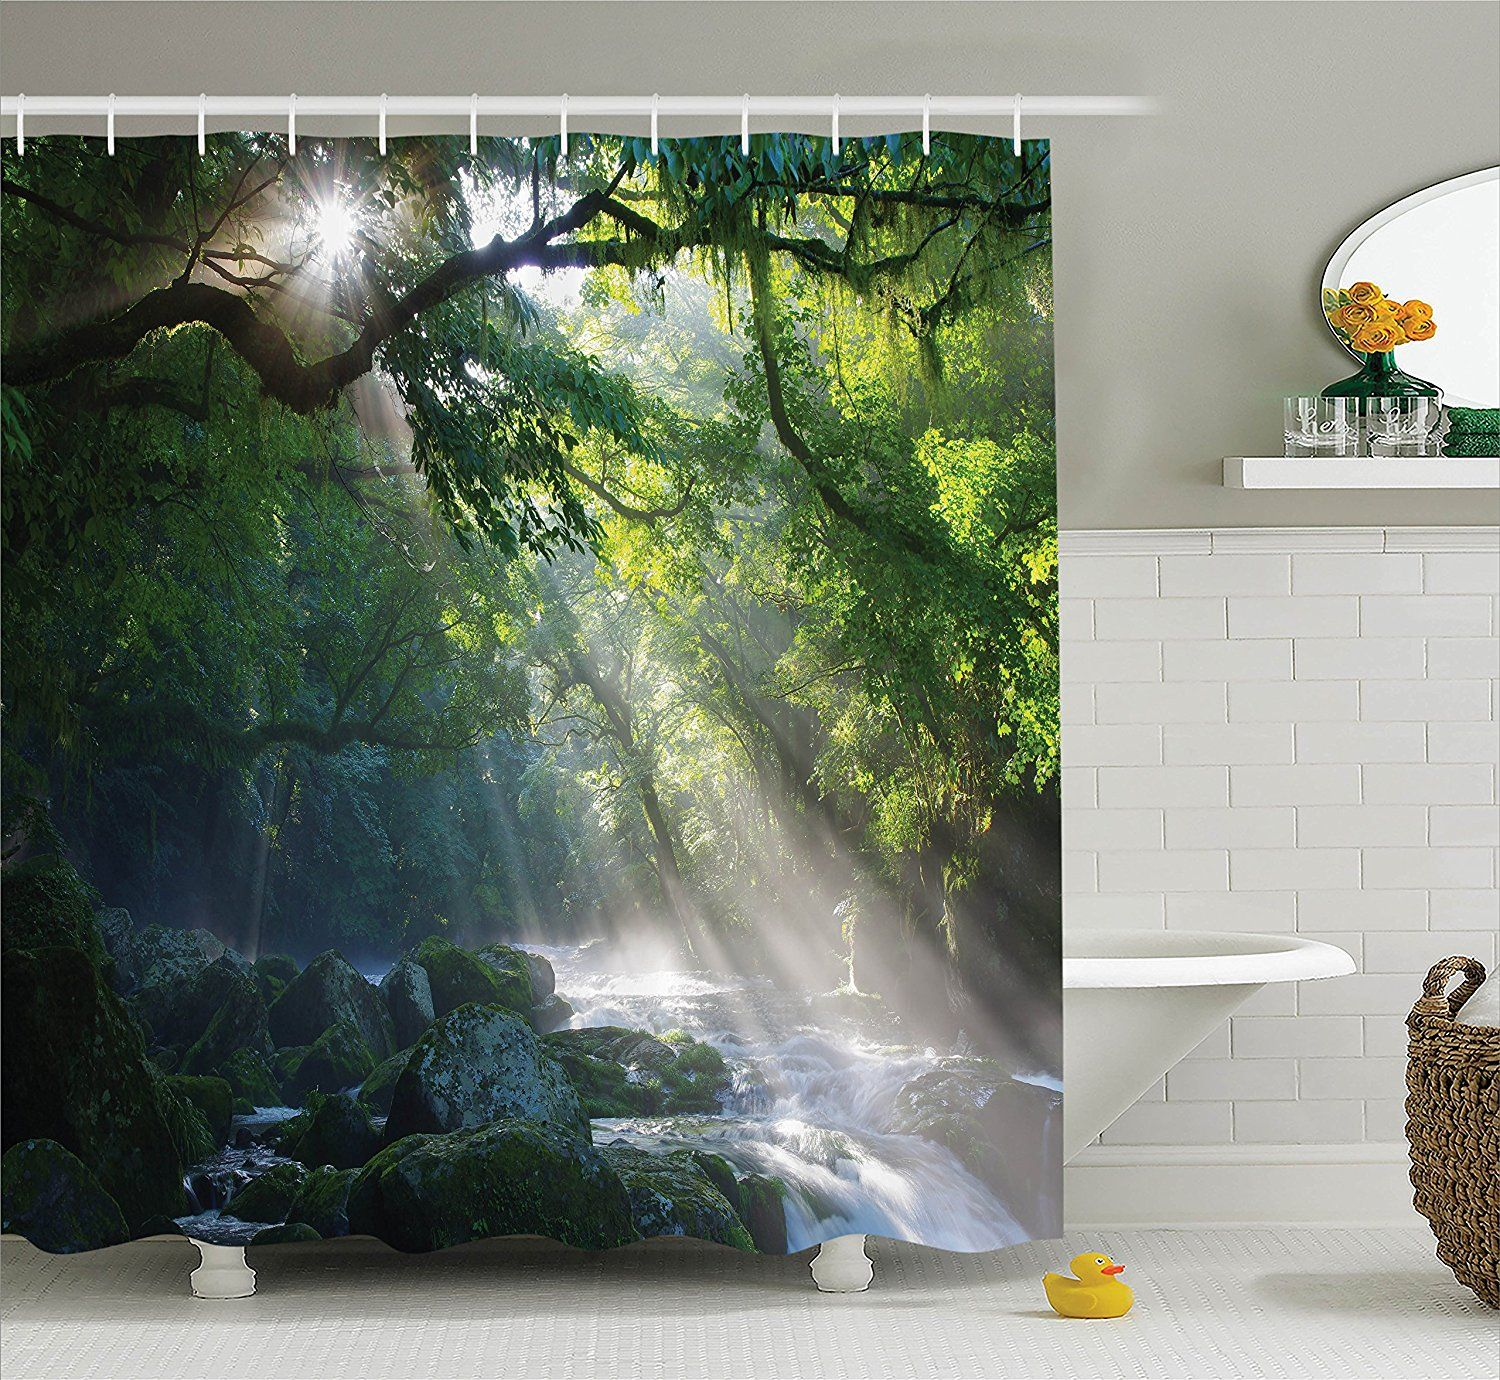 Rainforest shower curtain - Amazon Com Rainforest Decorations Shower Curtain Set By Ambesonne Stream In The Jungle